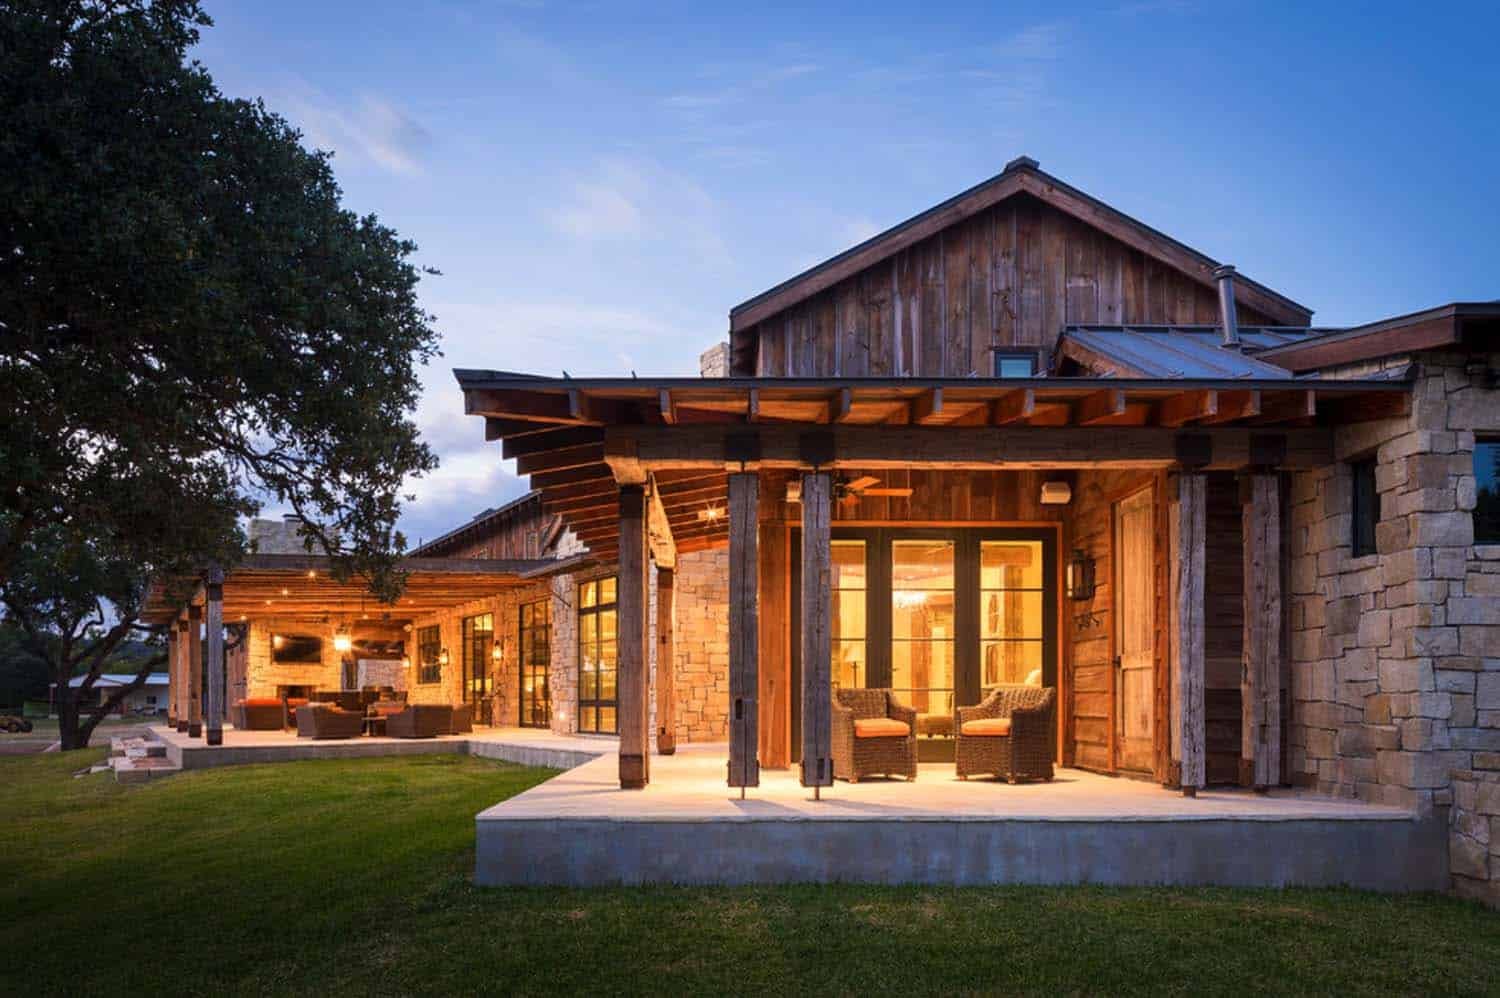 Modern rustic barn style retreat in texas hill country for Modern country house